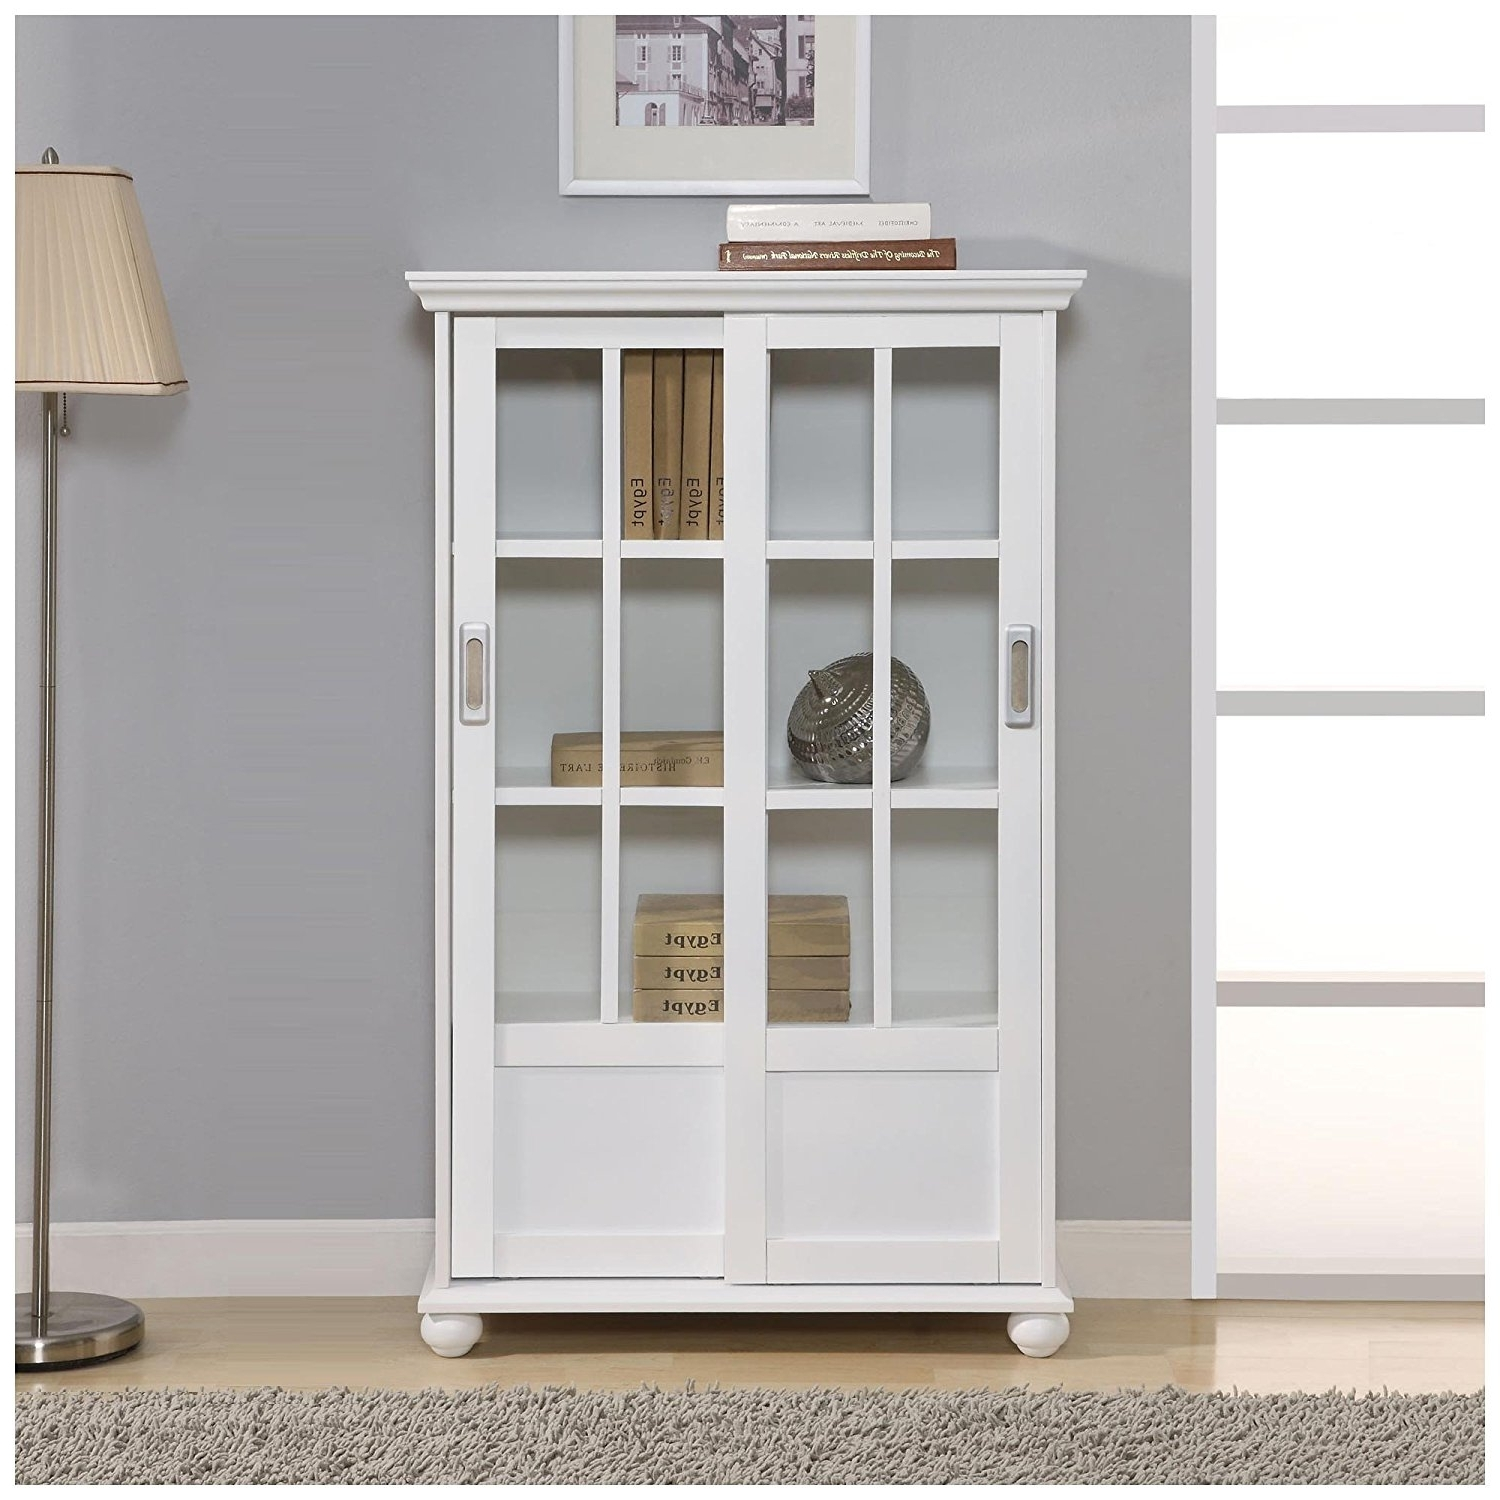 Bookcases With Glass Doors Intended For Famous Amazon: Altra 9448096 Bookcase With Sliding Glass Doors, White (View 5 of 15)